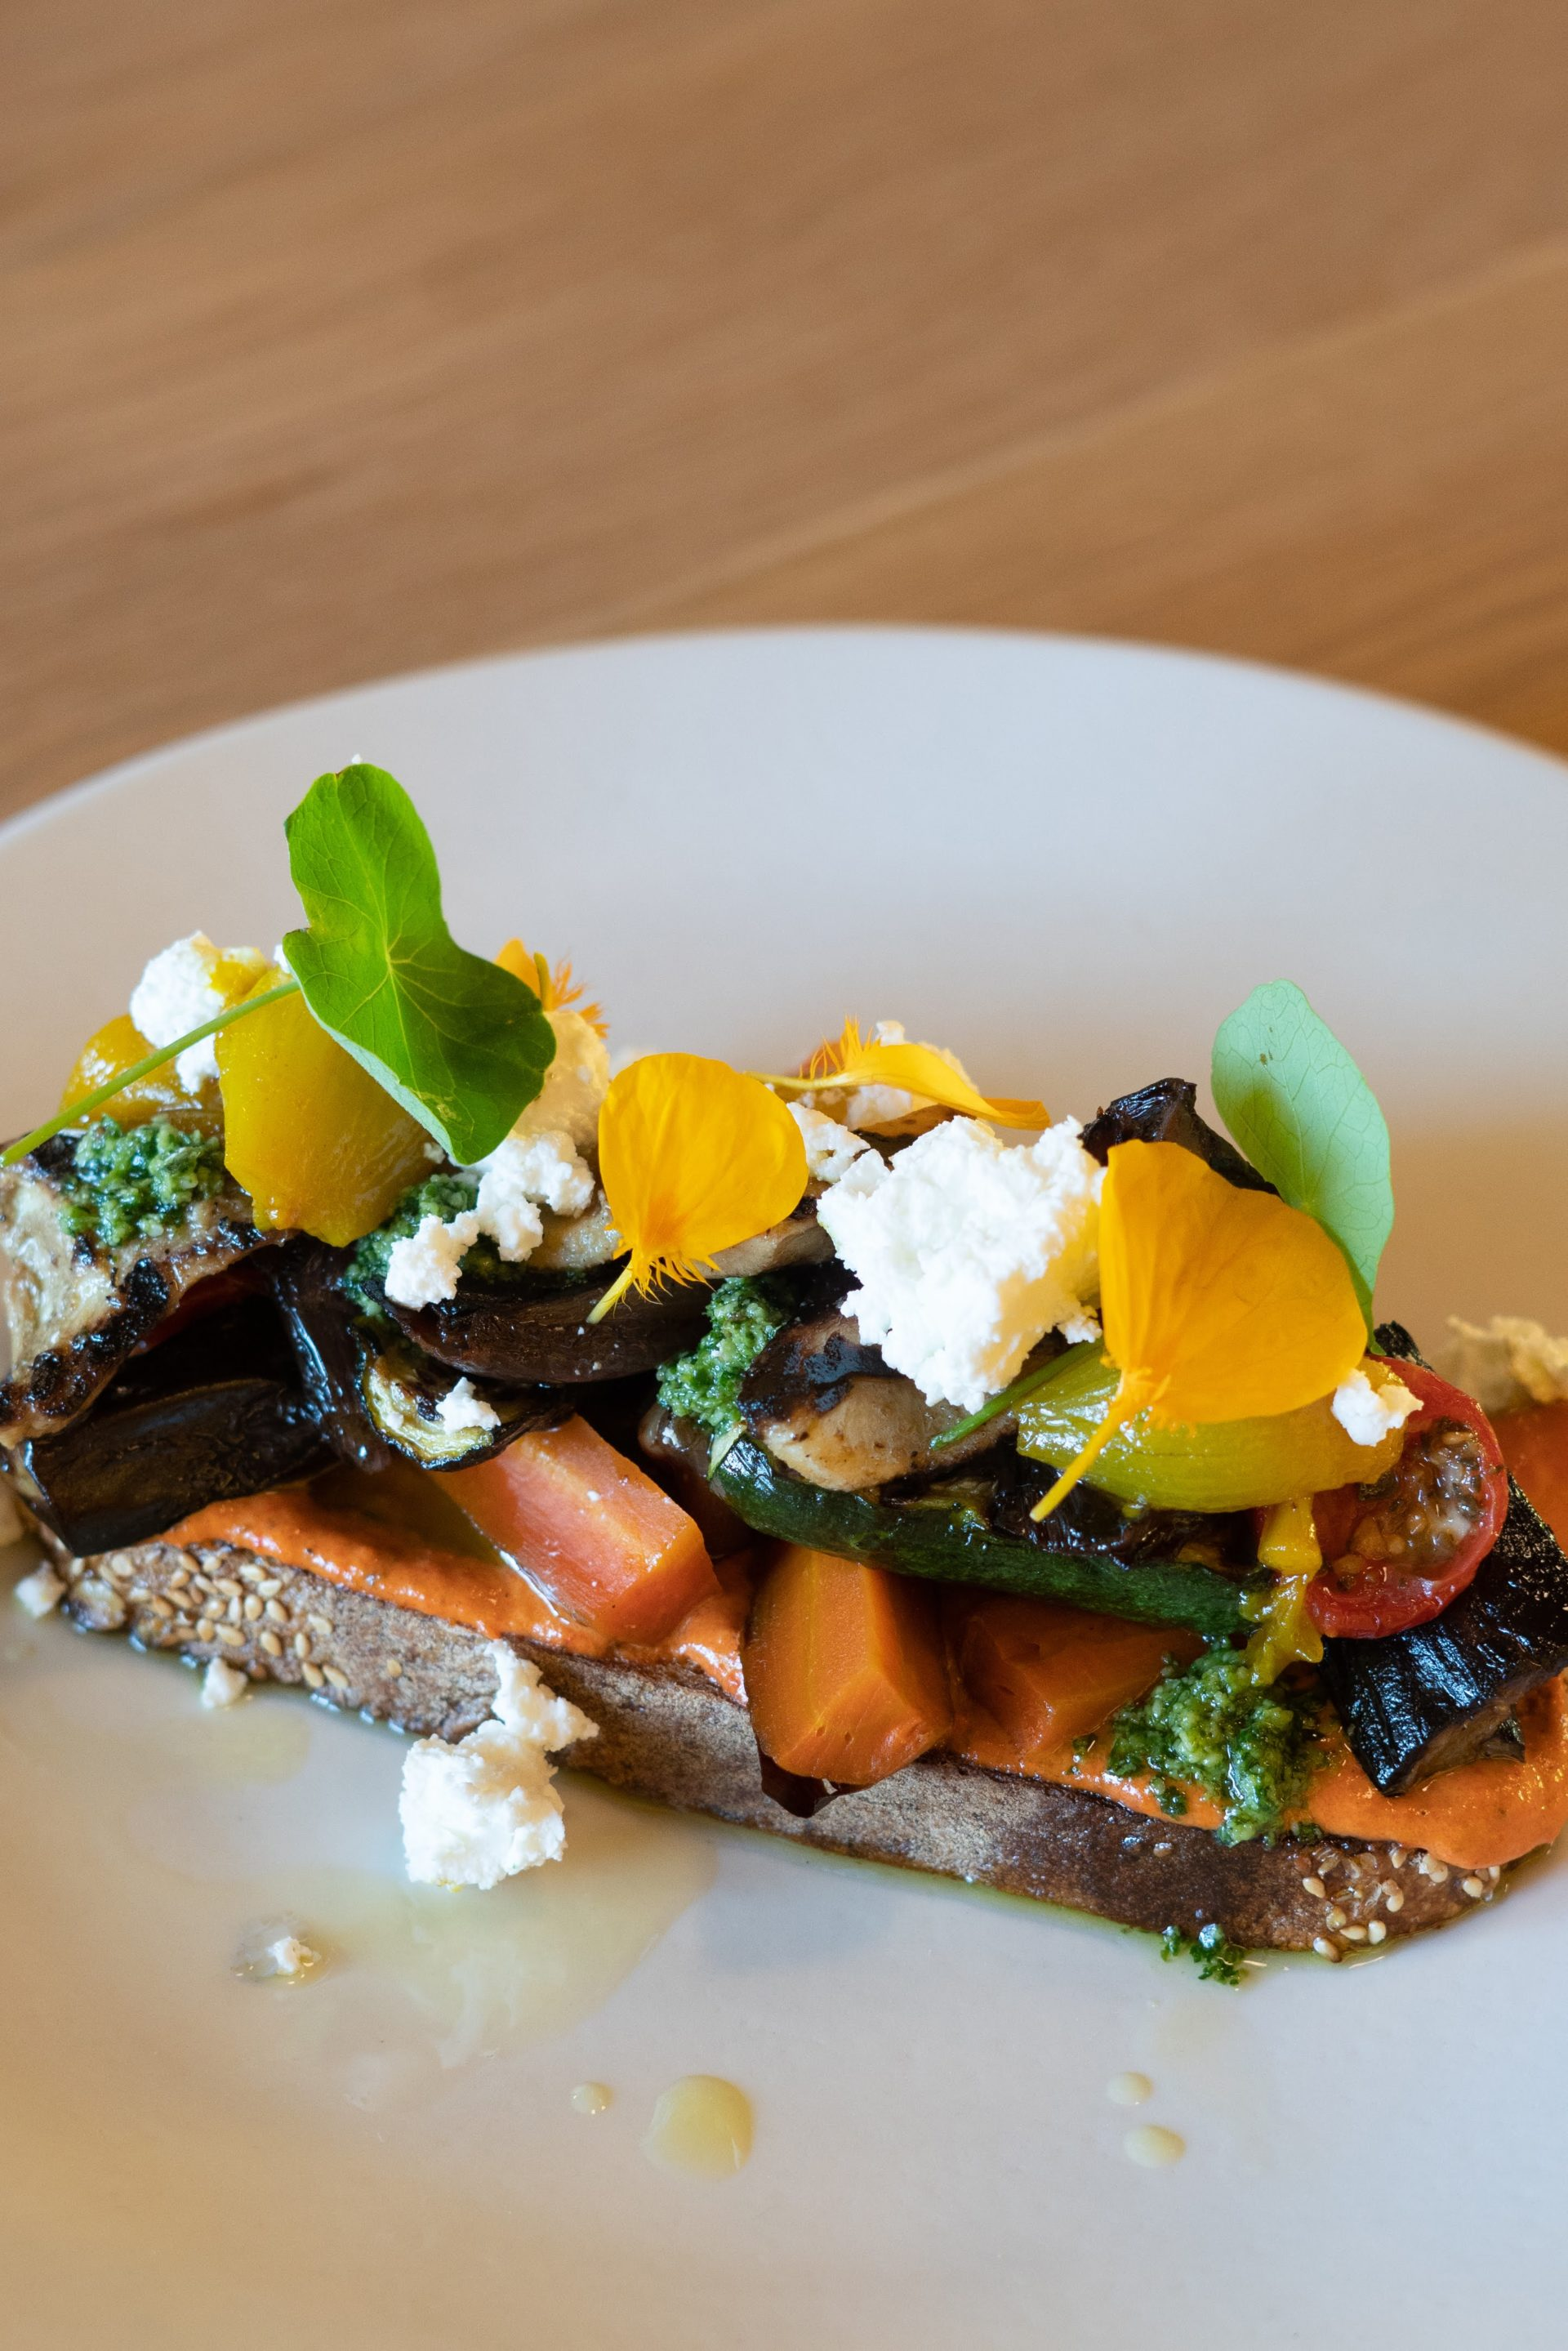 Chef Hennie Nel makes British favorite - Piccalilli served with a vegetable tartine on sourdough toast.